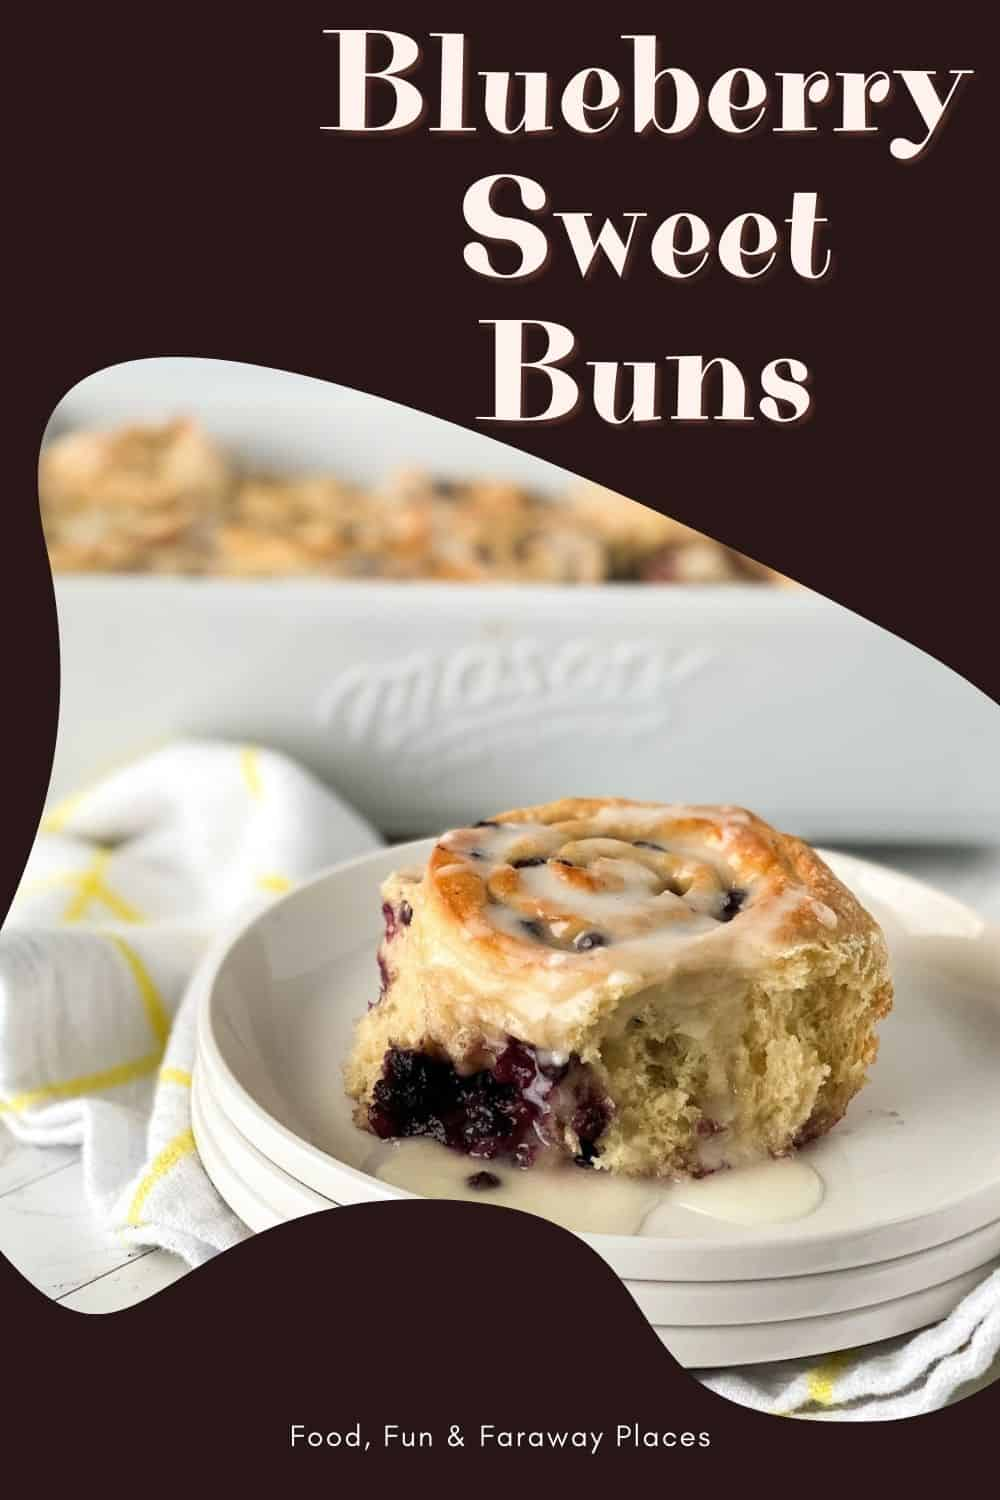 Image of blueberry sweet roll pastry on a white plate for Pinterest.